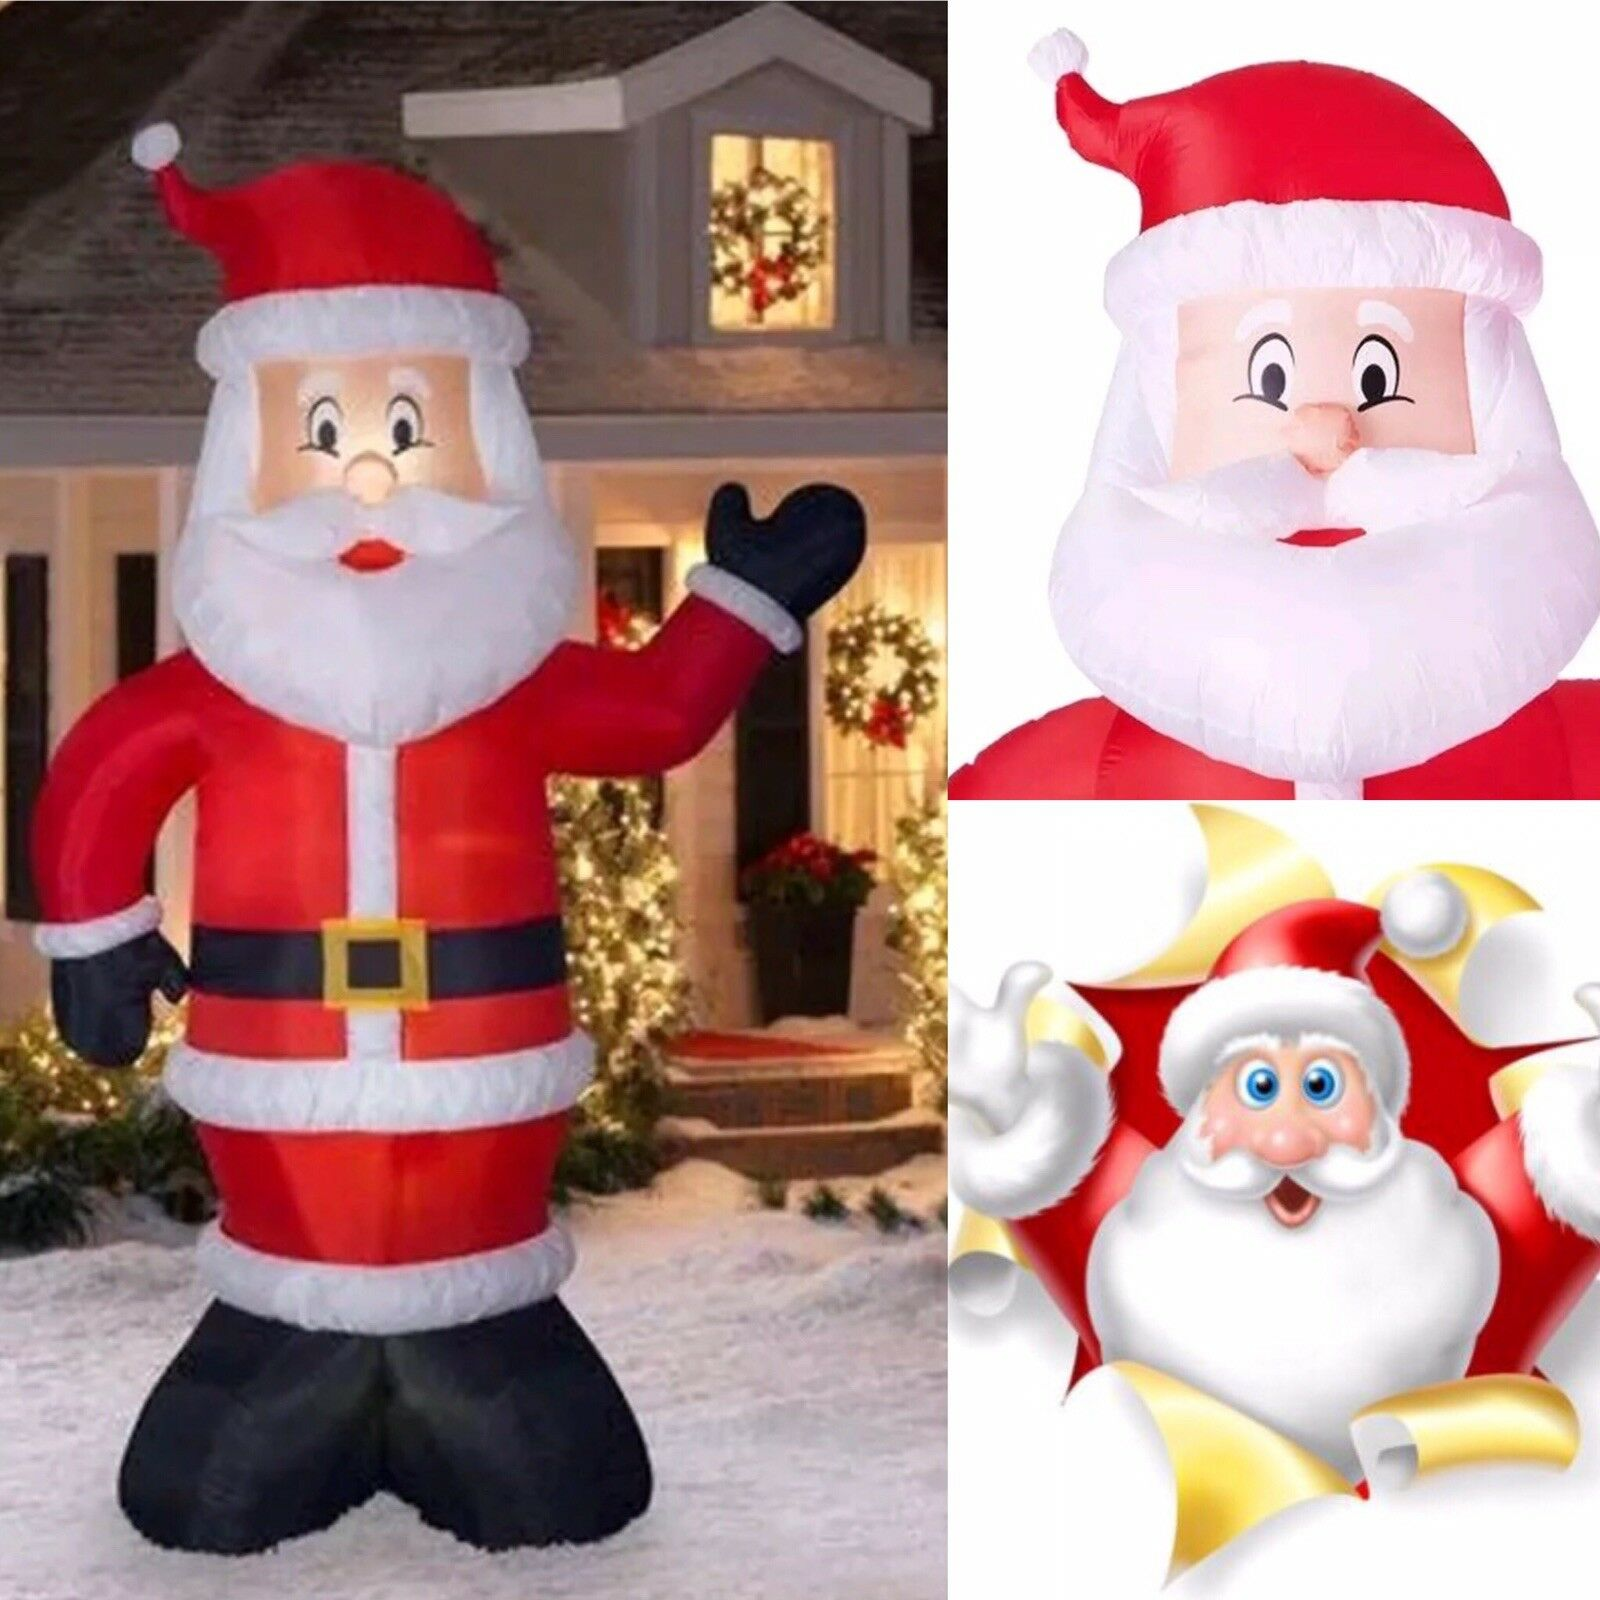 Holiday Time 10 FT Giant Santa Claus Inflatable with with with Lights HUGE 888b67